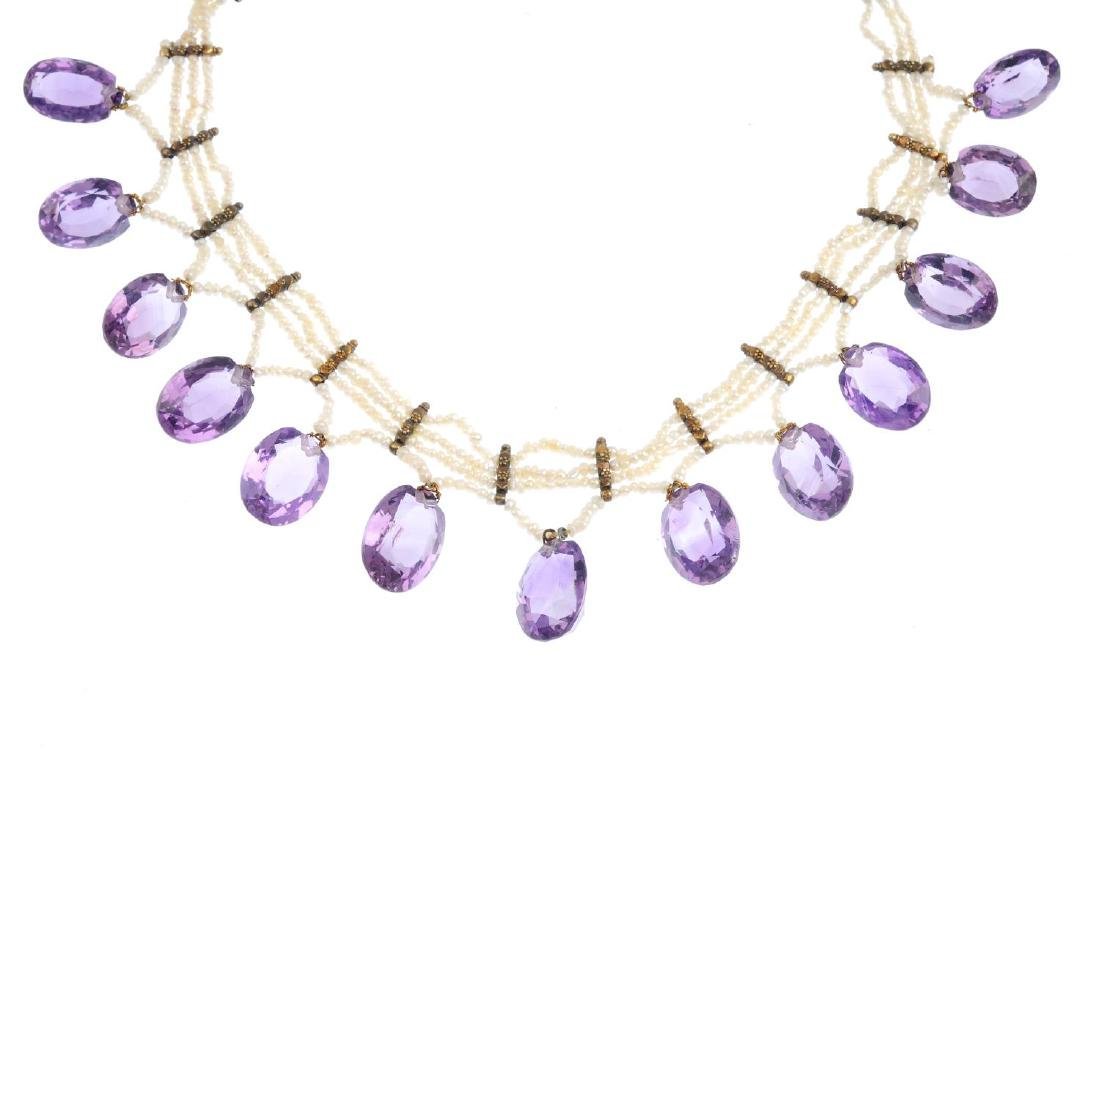 An amethyst and seed pearl necklace. Designed as three